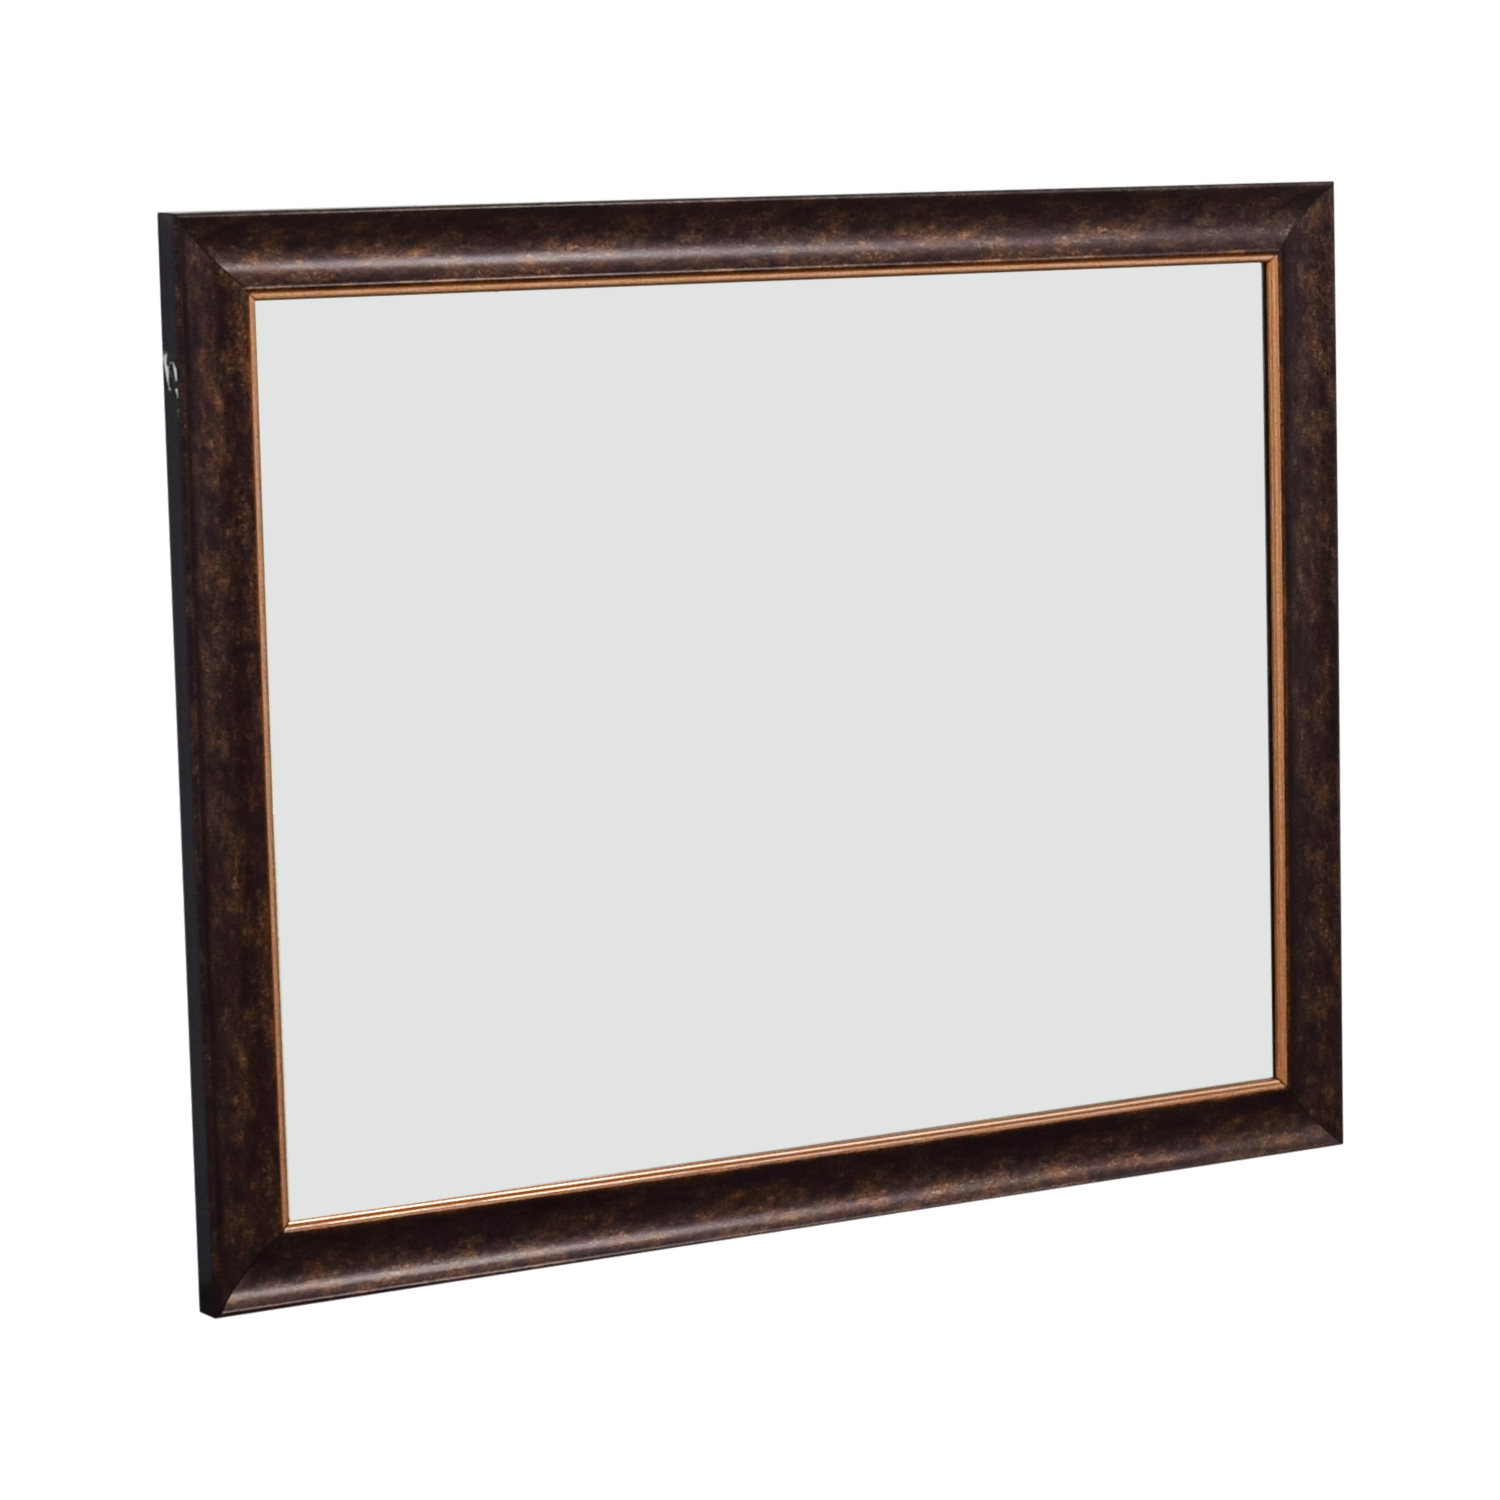 Bombay and Company Bombay and Company Rustic Beveled Mirror nyc